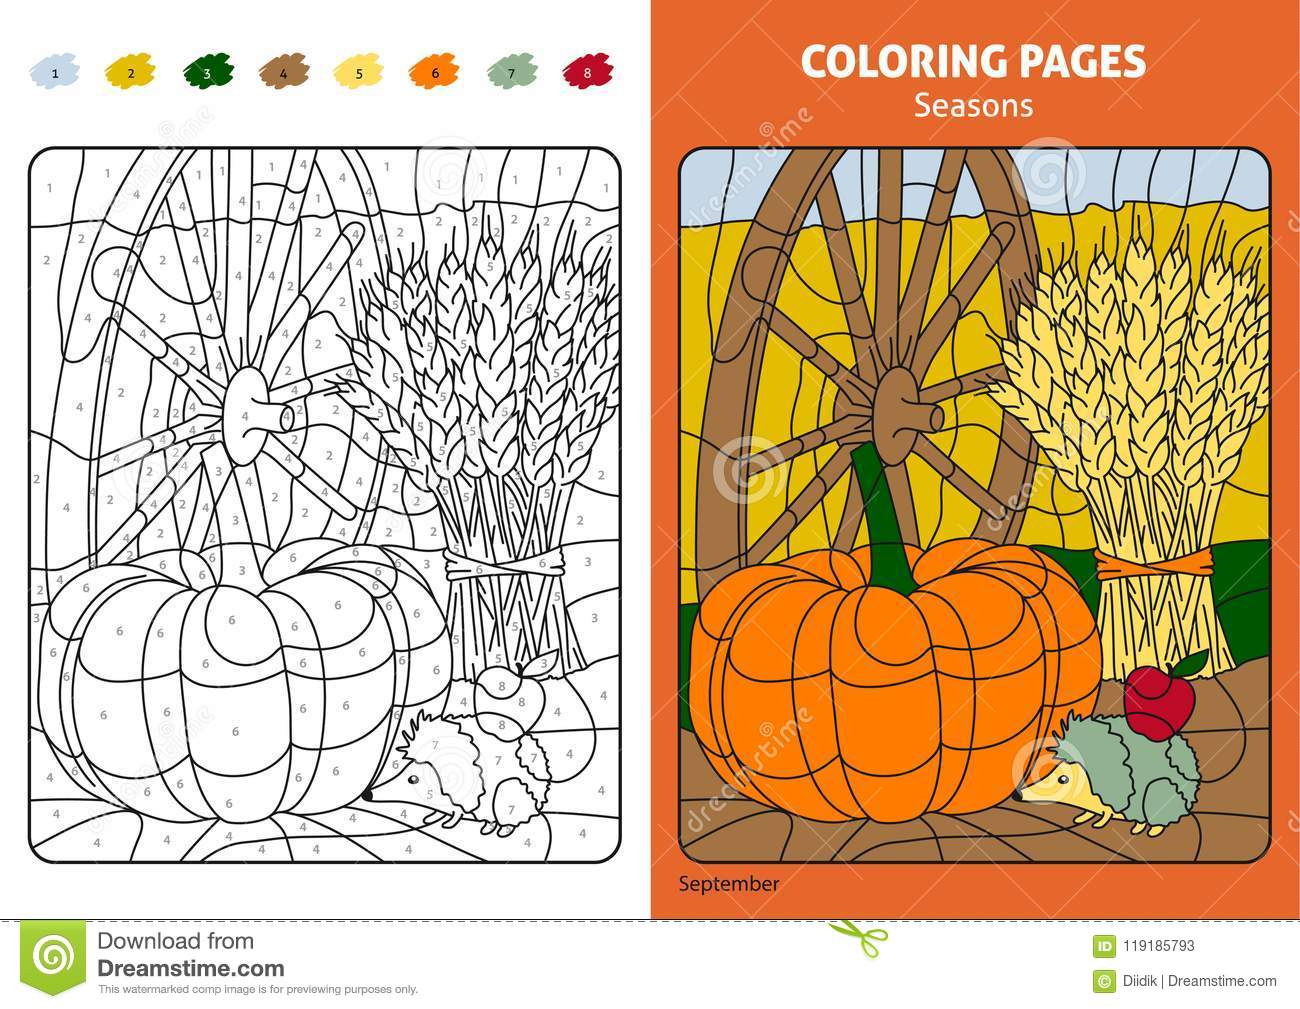 Seasons Coloring Page For Kids, September Month Stock